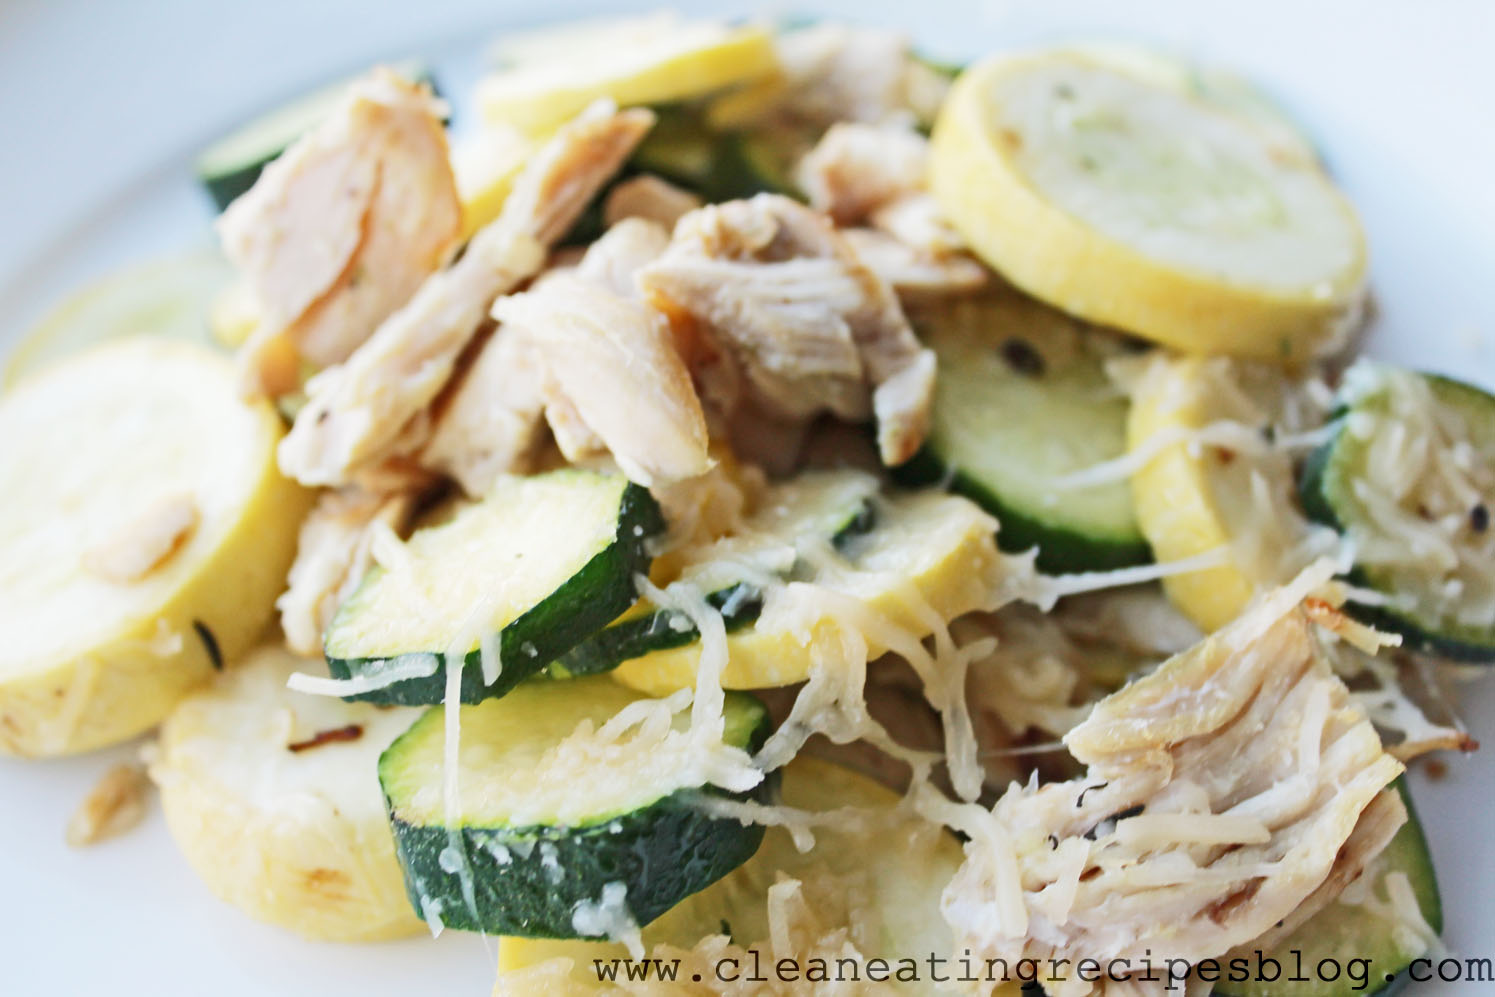 Clean Eating Recipe – Chicken, Zucchini and Parmesan Melt | Clean ...